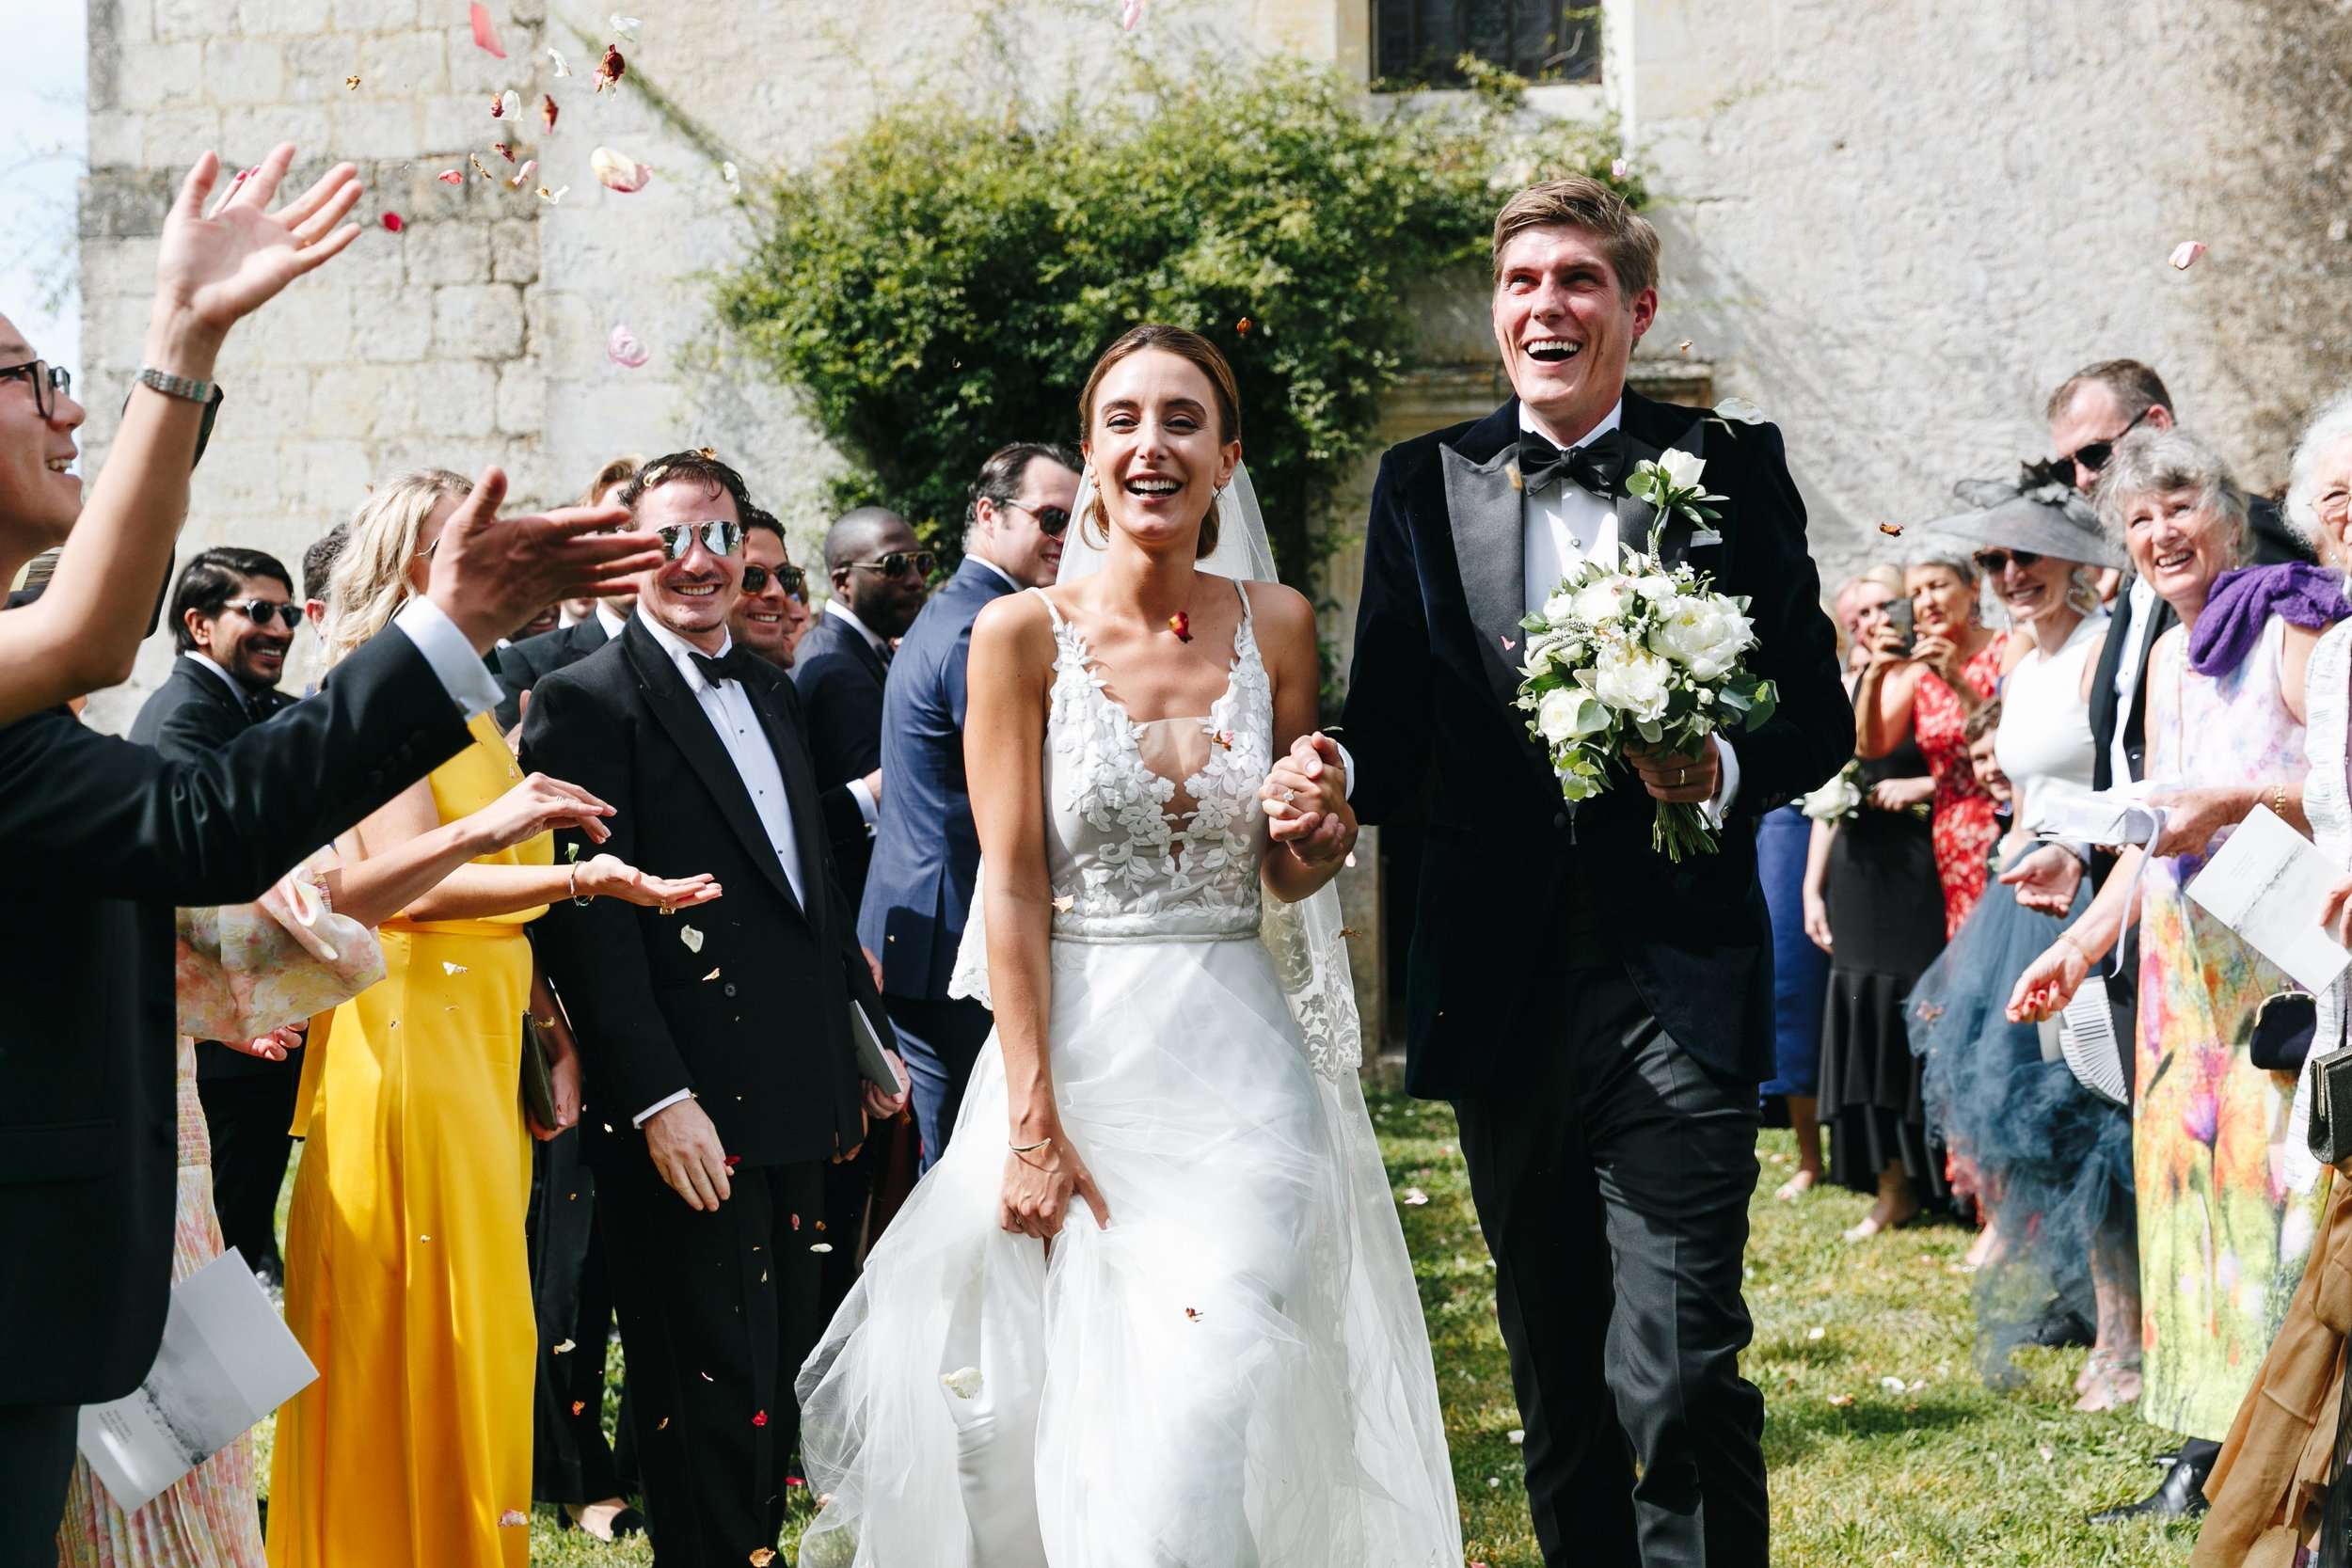 Steph Max South of France Wedding lr-312.jpg